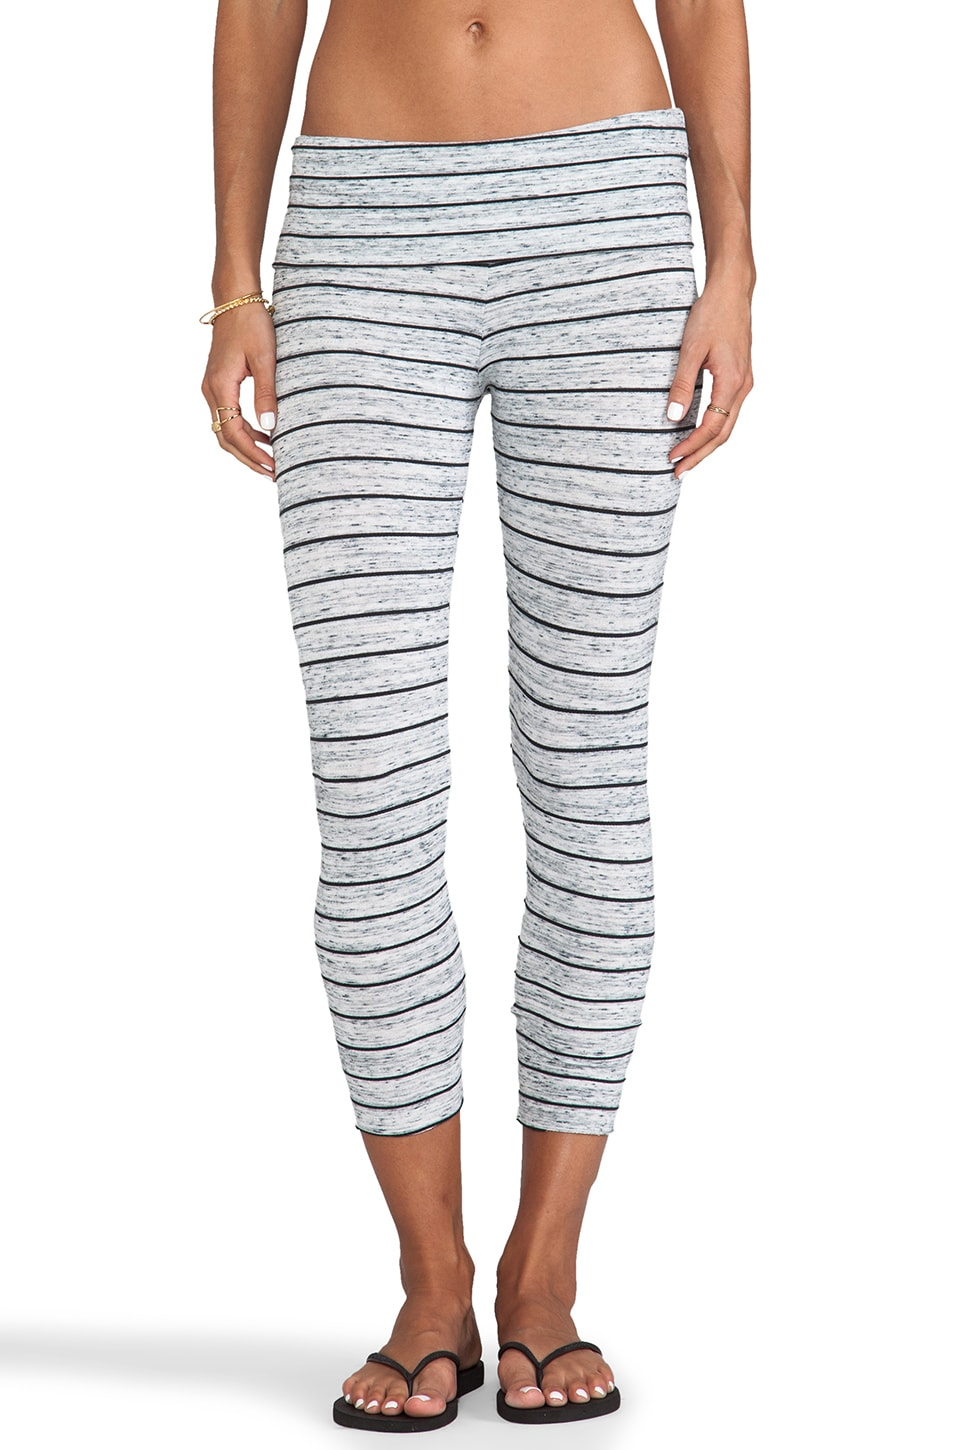 Saint Grace Crop Legging in Moby Stripe Storm & Black